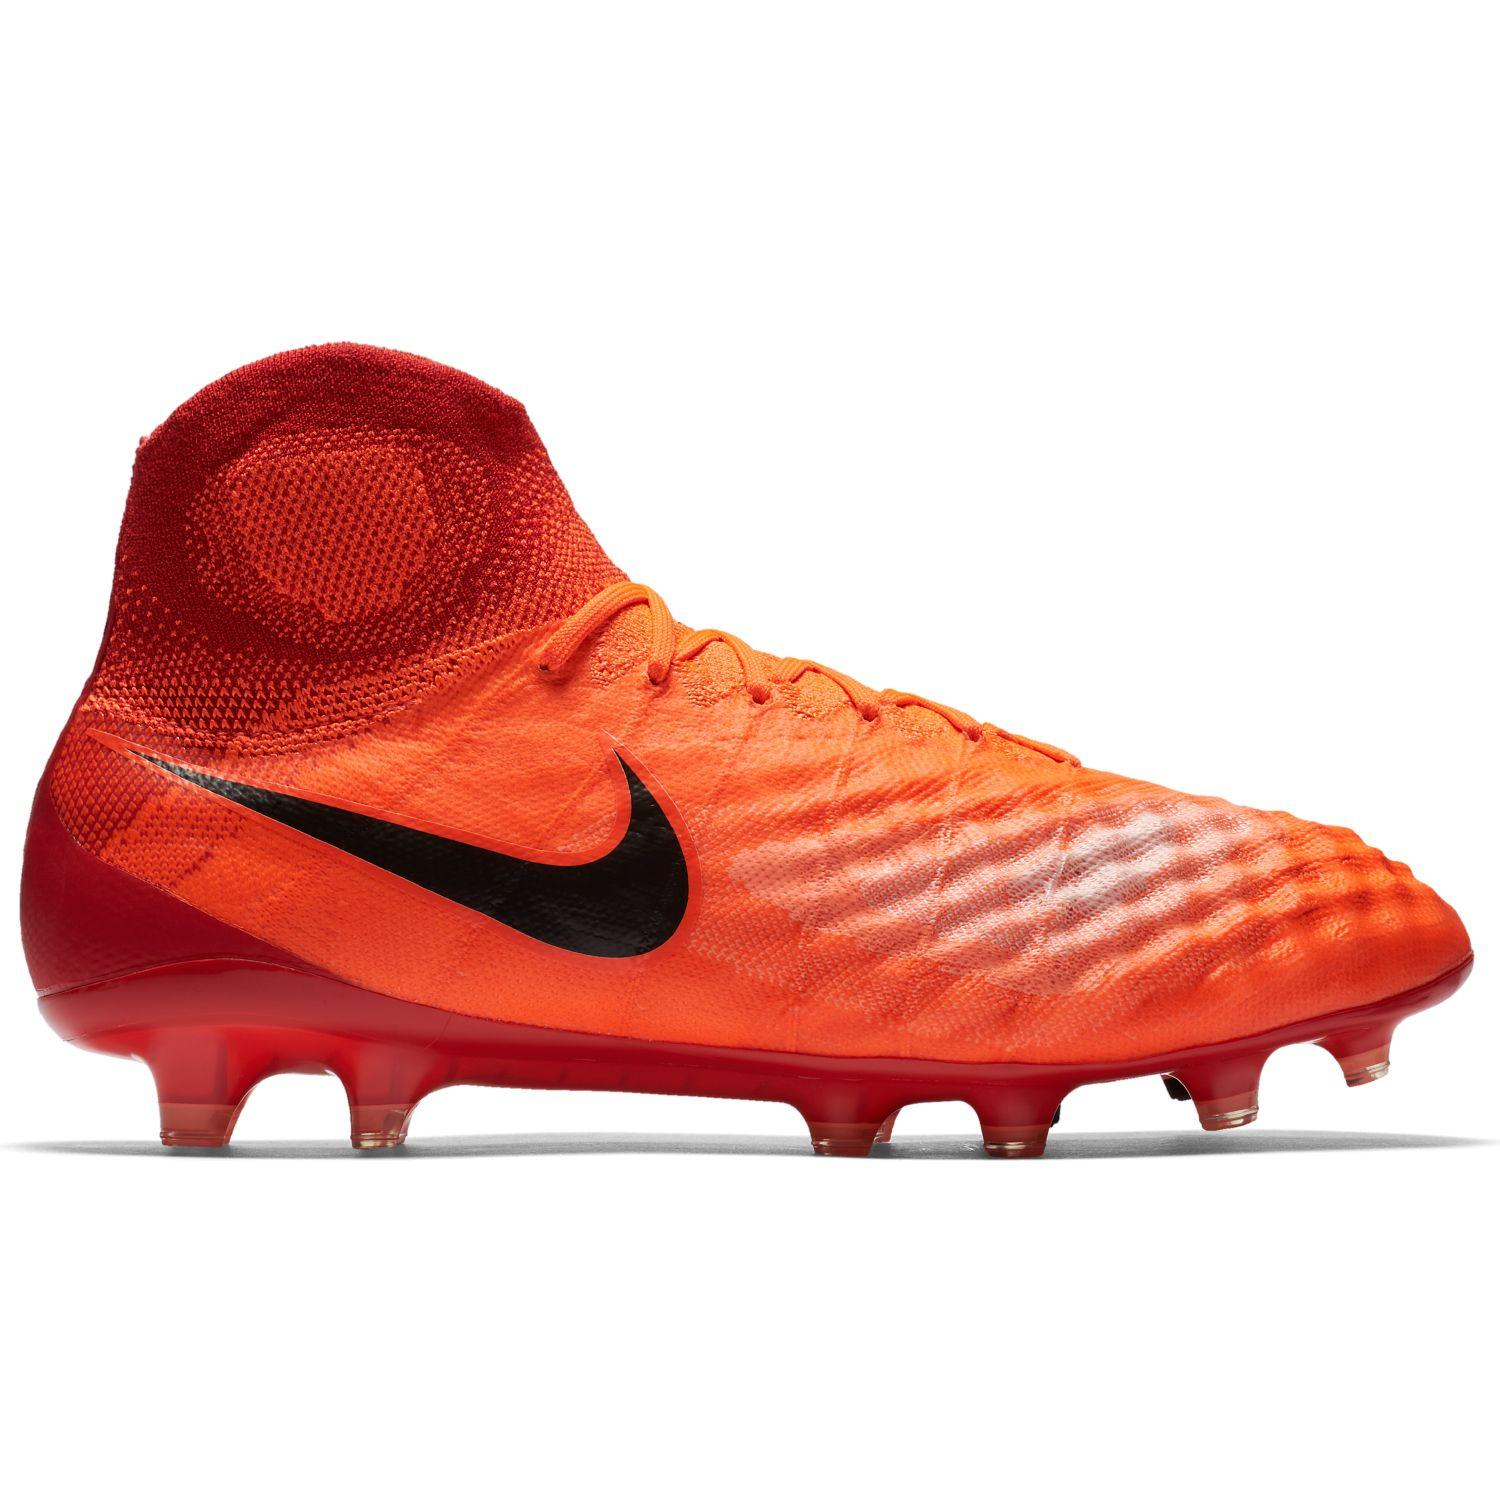 2cf43e6cd Nike Football Shoes Magista Obra Ii Fg Otal Crimson black-university Red -  Tifoshop.com